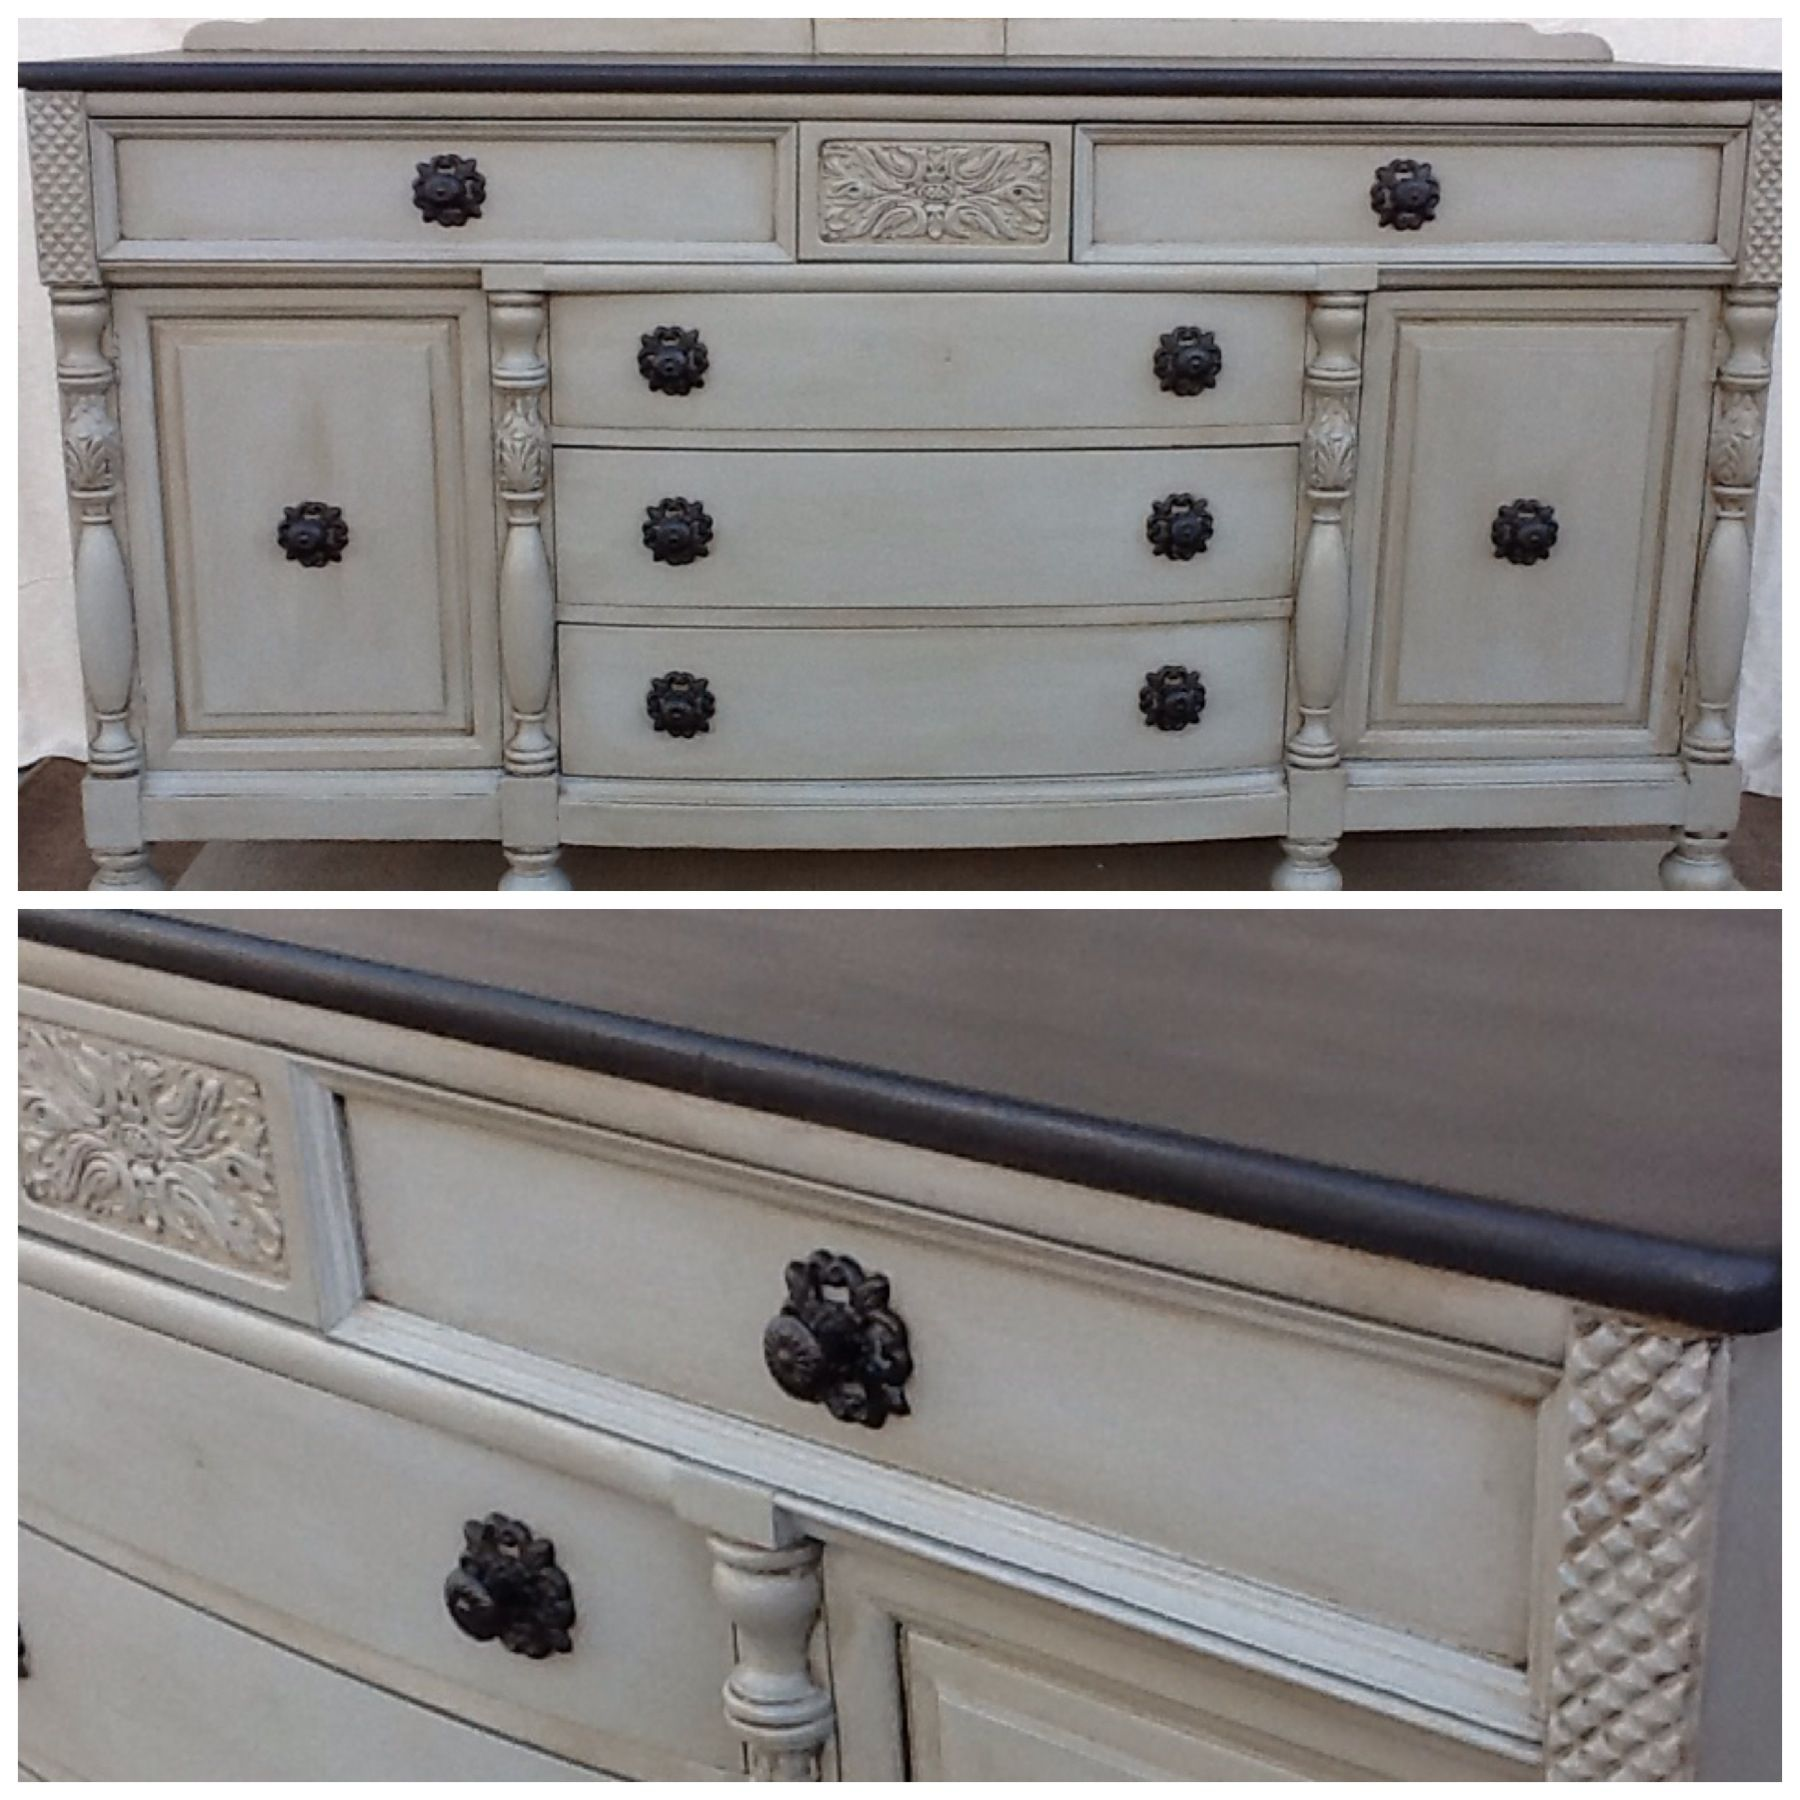 Annie Sloan Chalk Paint~French Linen With Clear And Dark Wax With A  Graphite Painted